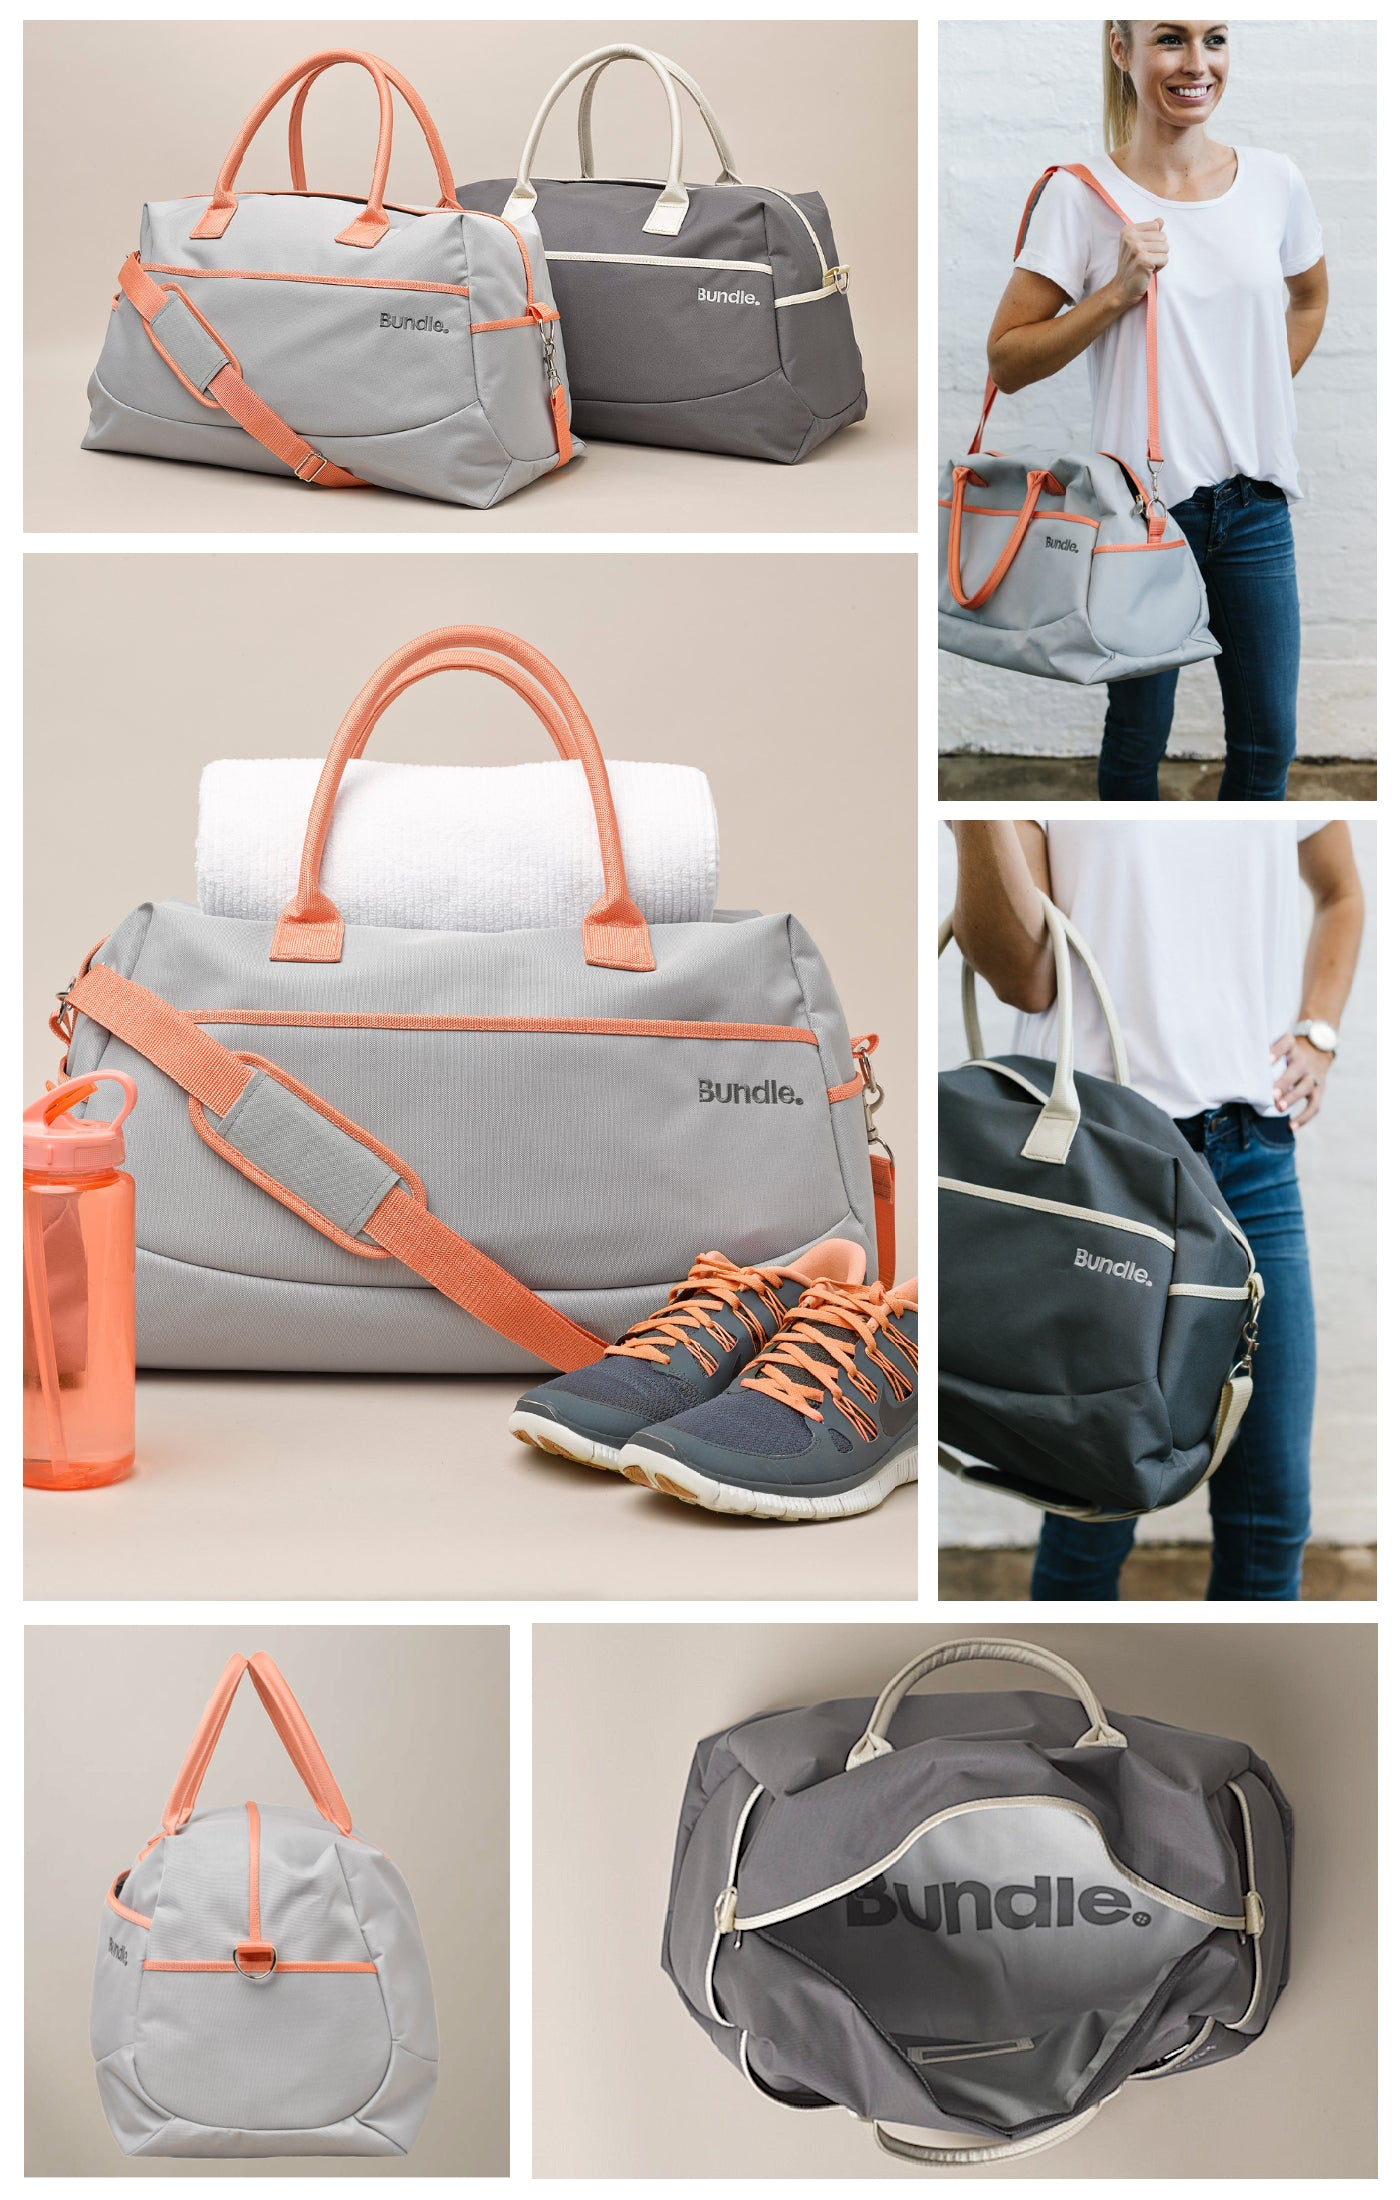 Bundle Weekender Bag